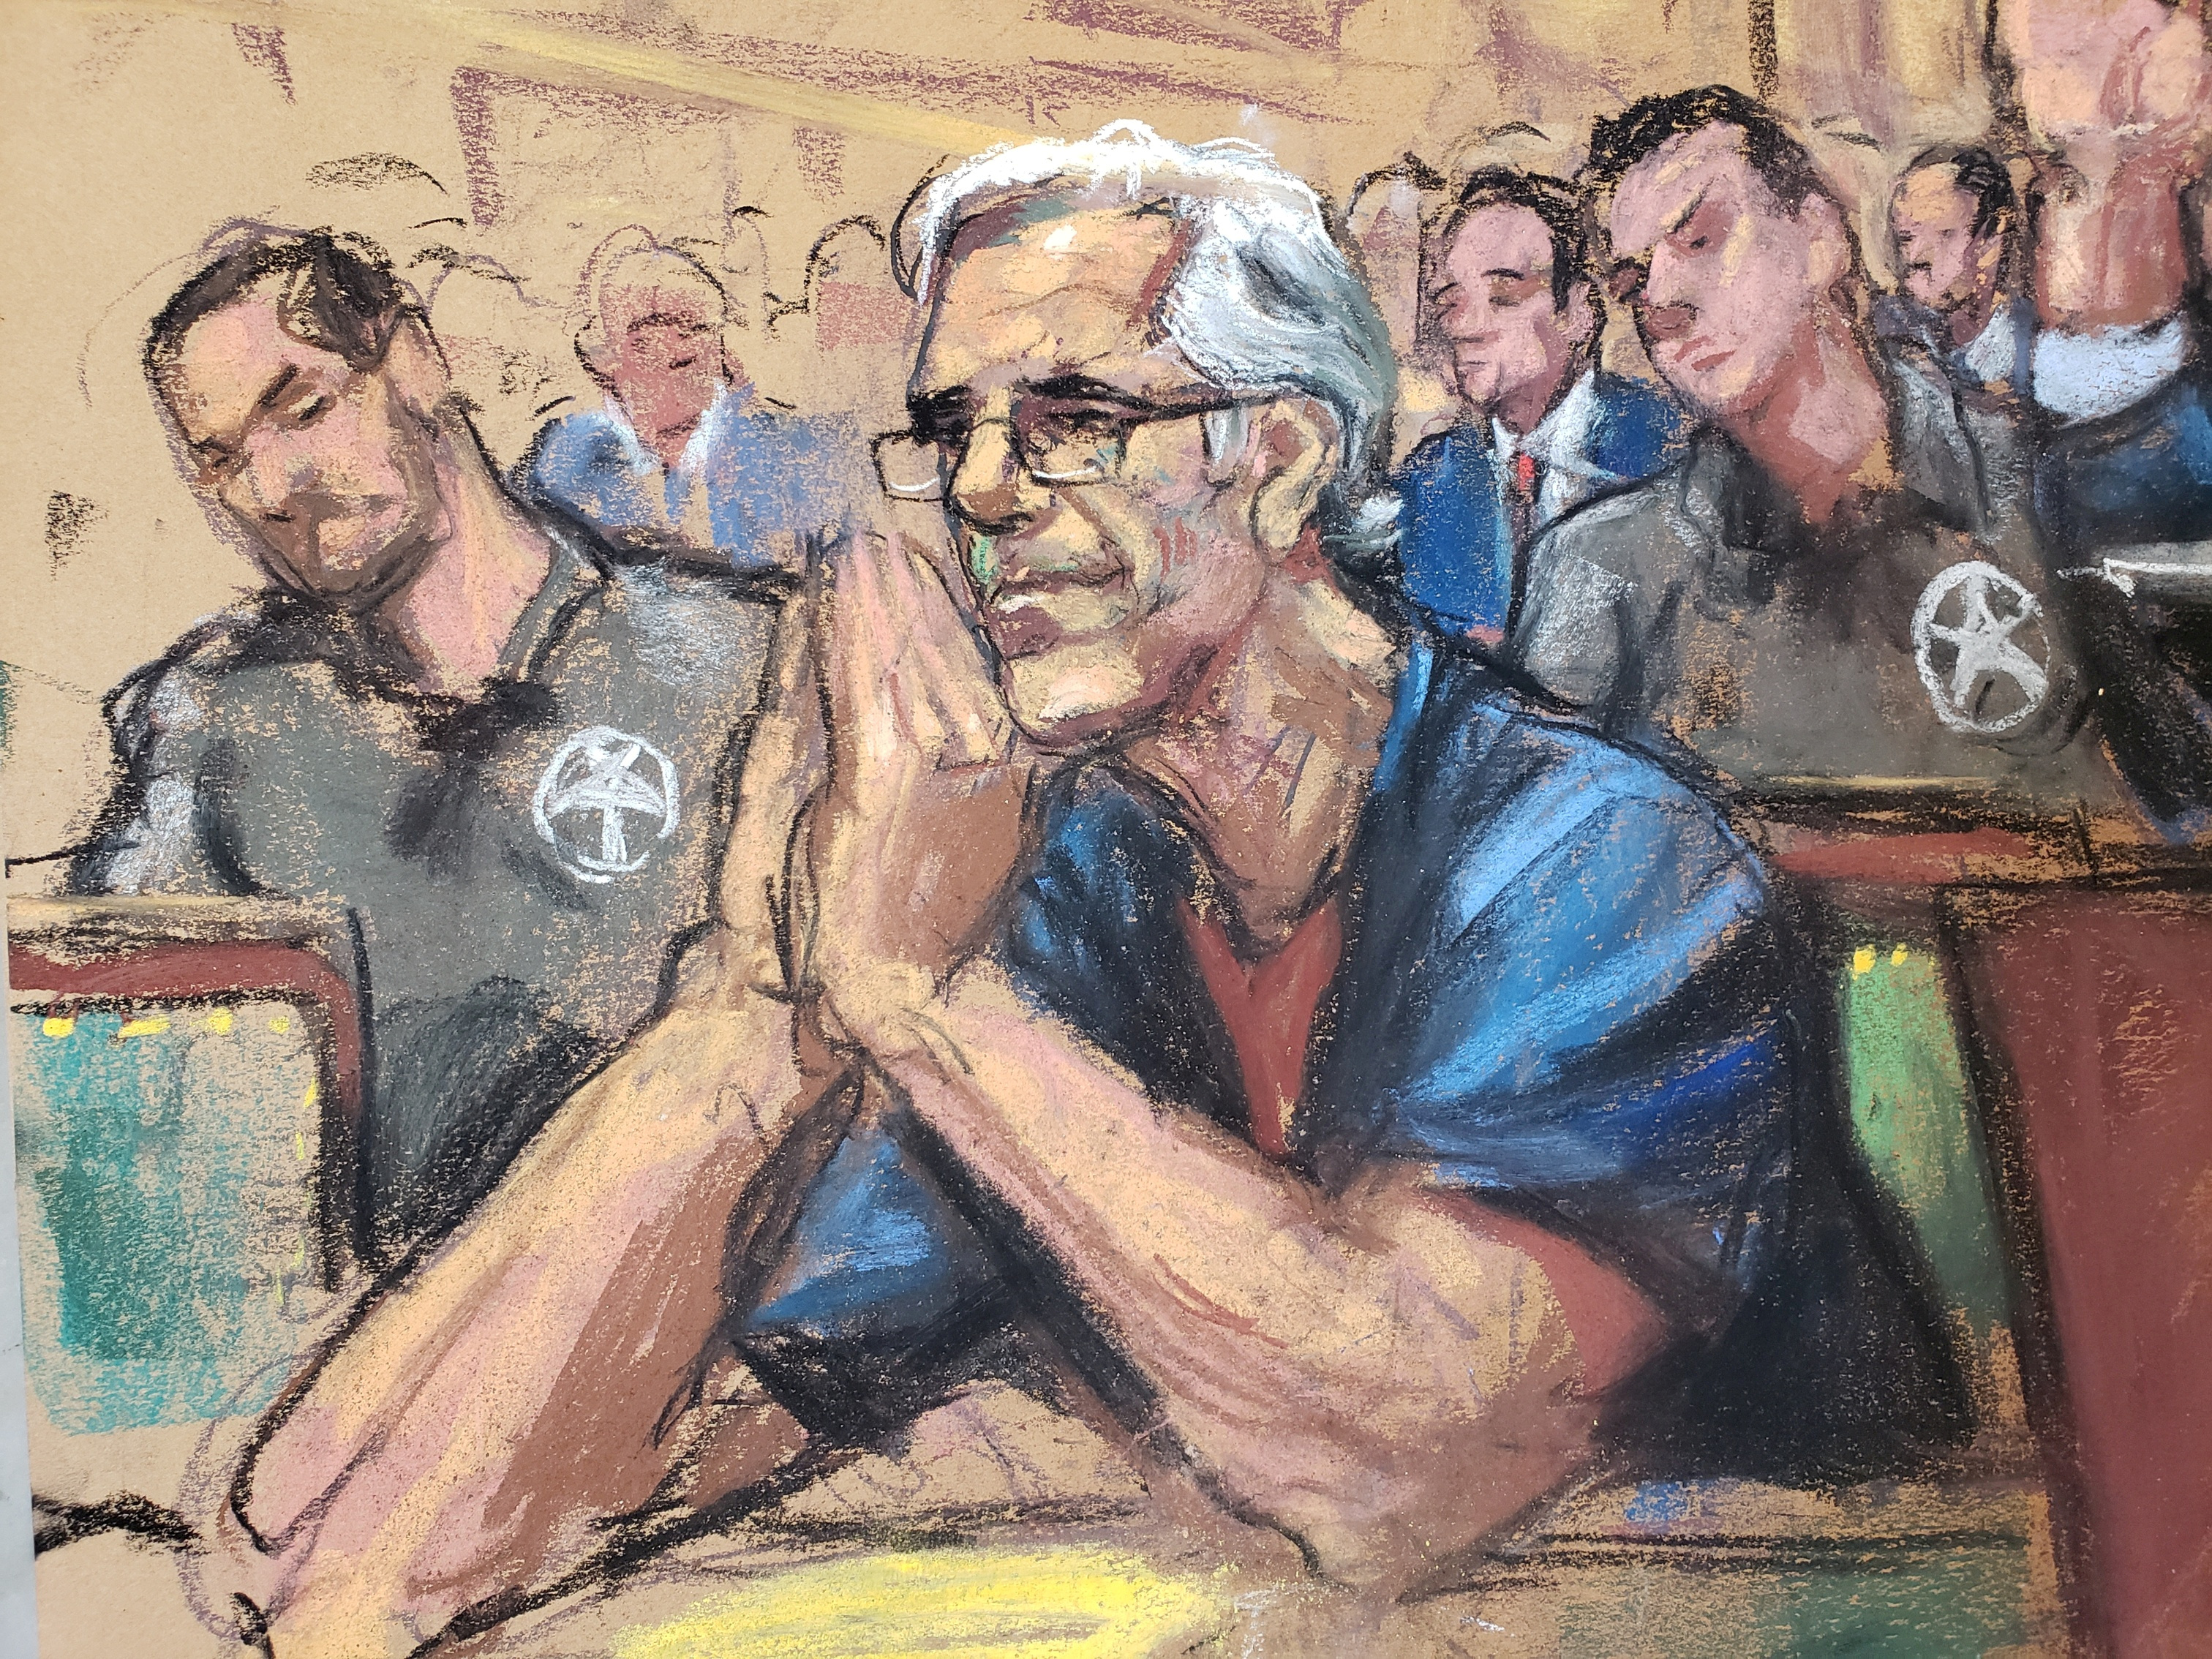 Jeffrey Epstein looks on during a a bail hearing in U.S. financier Jeffrey Epstein's sex trafficking case, in this court sketch in New York, U.S., July 15, 2019. Epstein was denied bail and was found unresponsive in the Metropolitan Correctional Center August 10, 2019. REUTERS/Jane Rosenberg/File Photo RC1A1C9C32D0